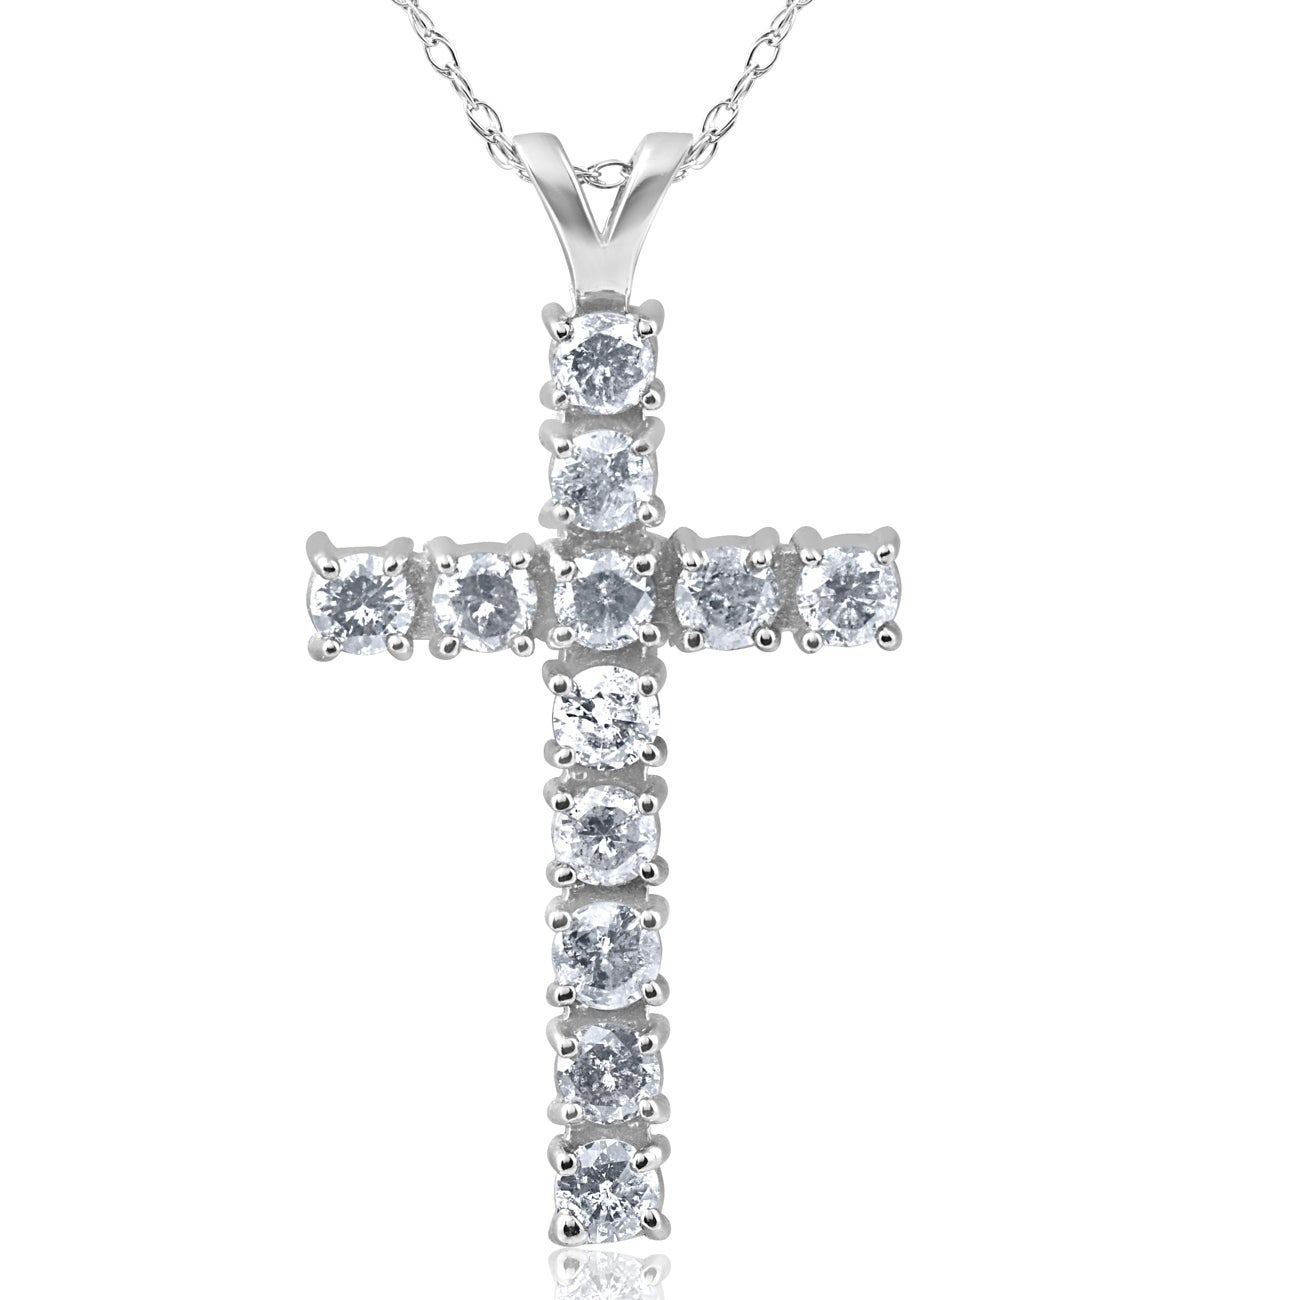 Shop 14k white gold 1ct tdw diamond cross necklace on sale free shop 14k white gold 1ct tdw diamond cross necklace on sale free shipping today overstock 9958965 mozeypictures